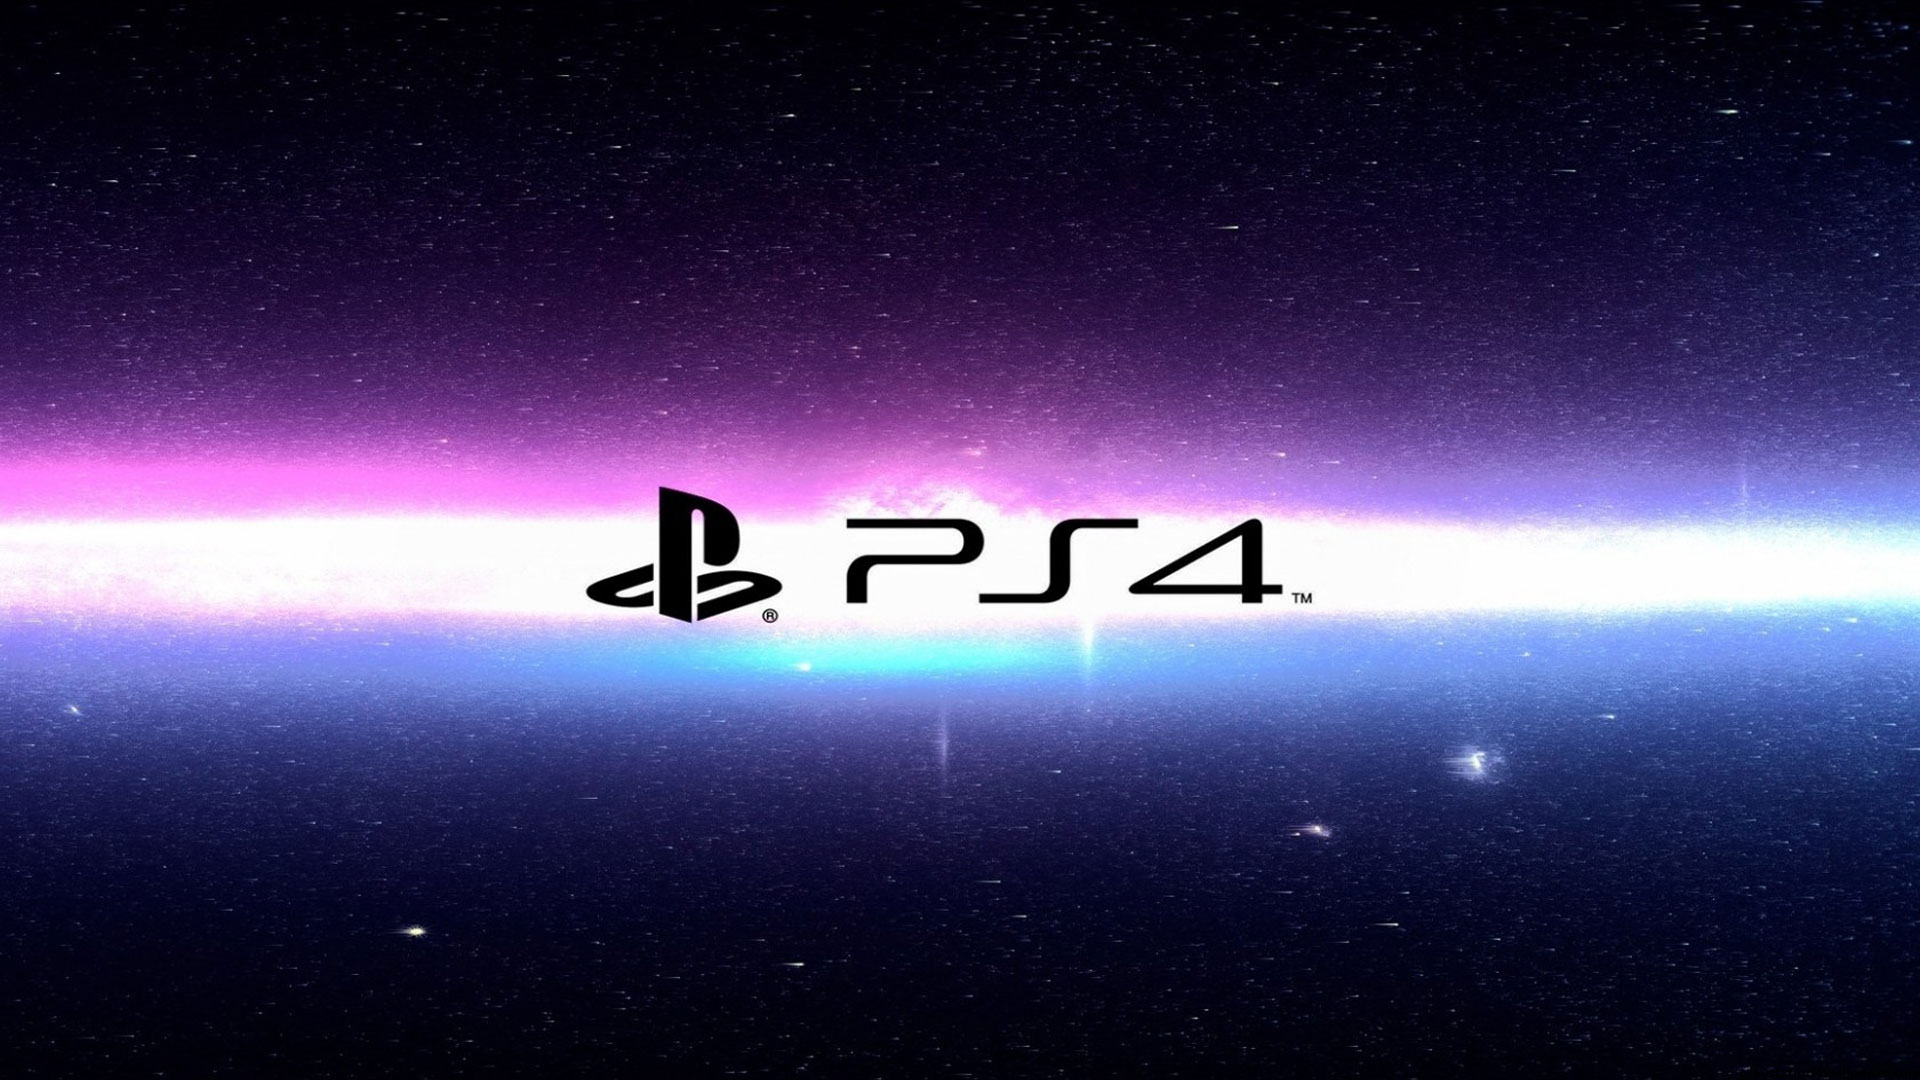 ps3 wallpapers 1080p mass - photo #41